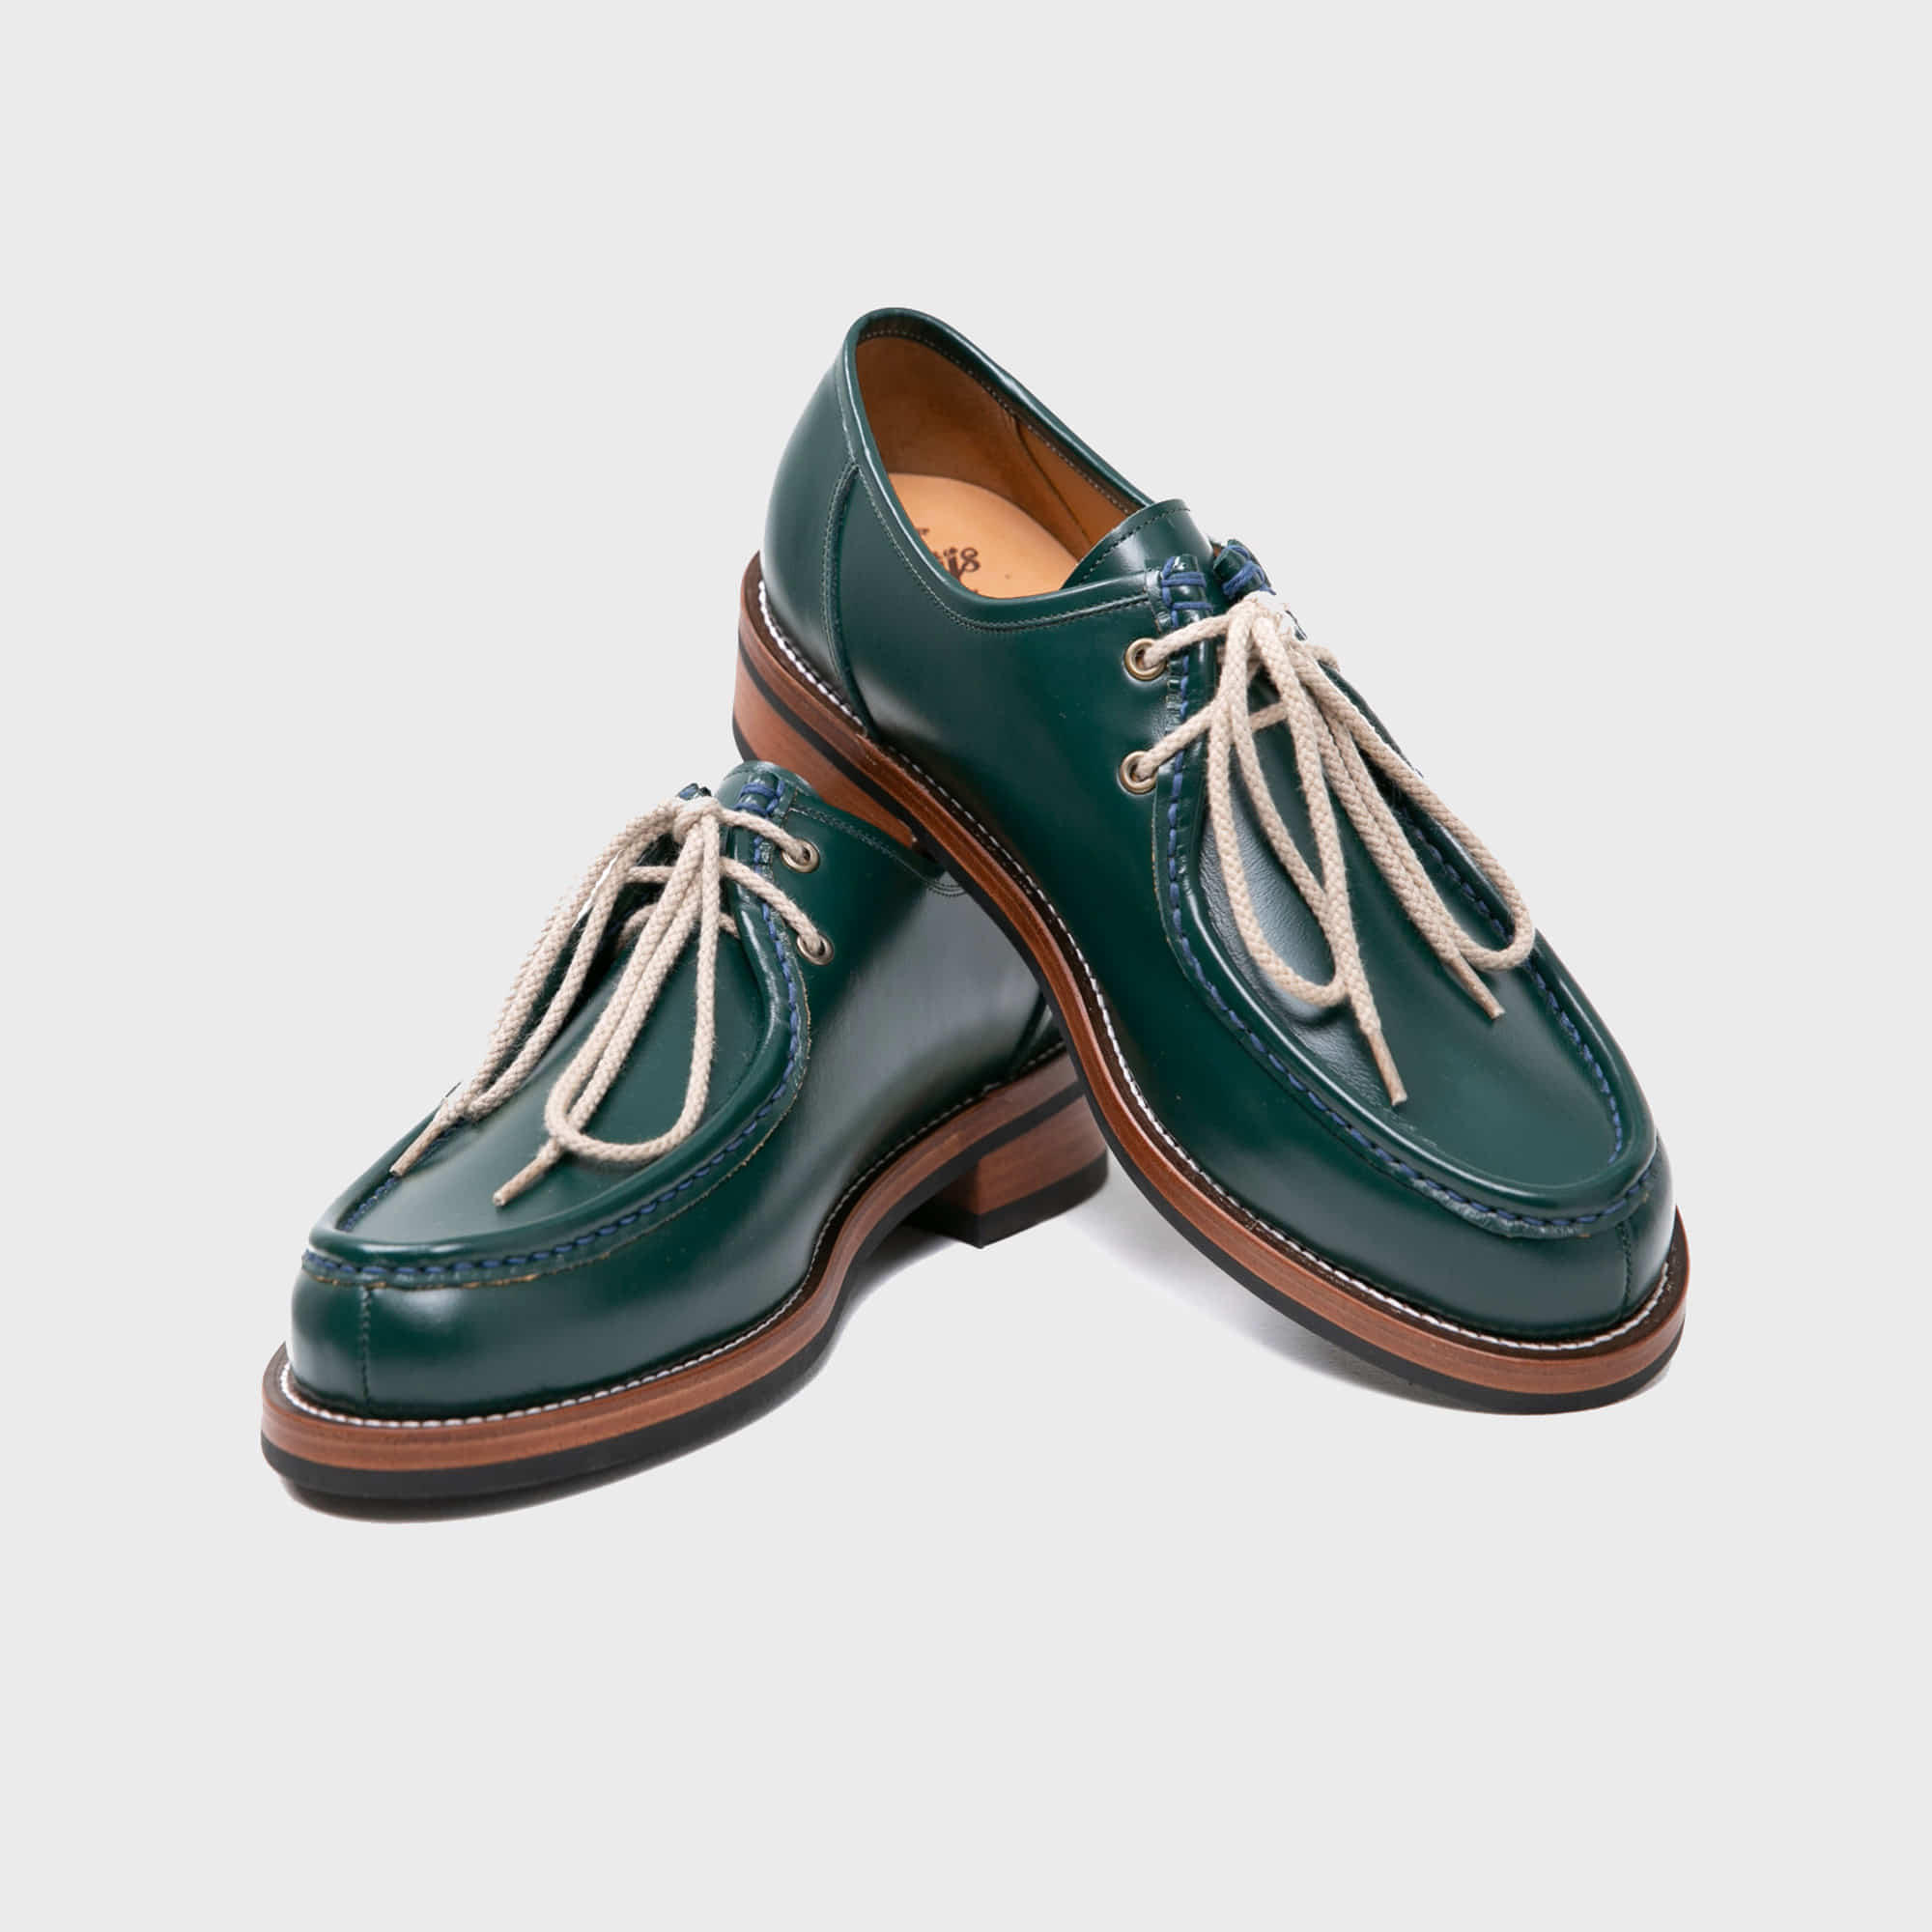 [BILLYS&CO X ANGLAN] Tyrolean Derby Shoes - Green